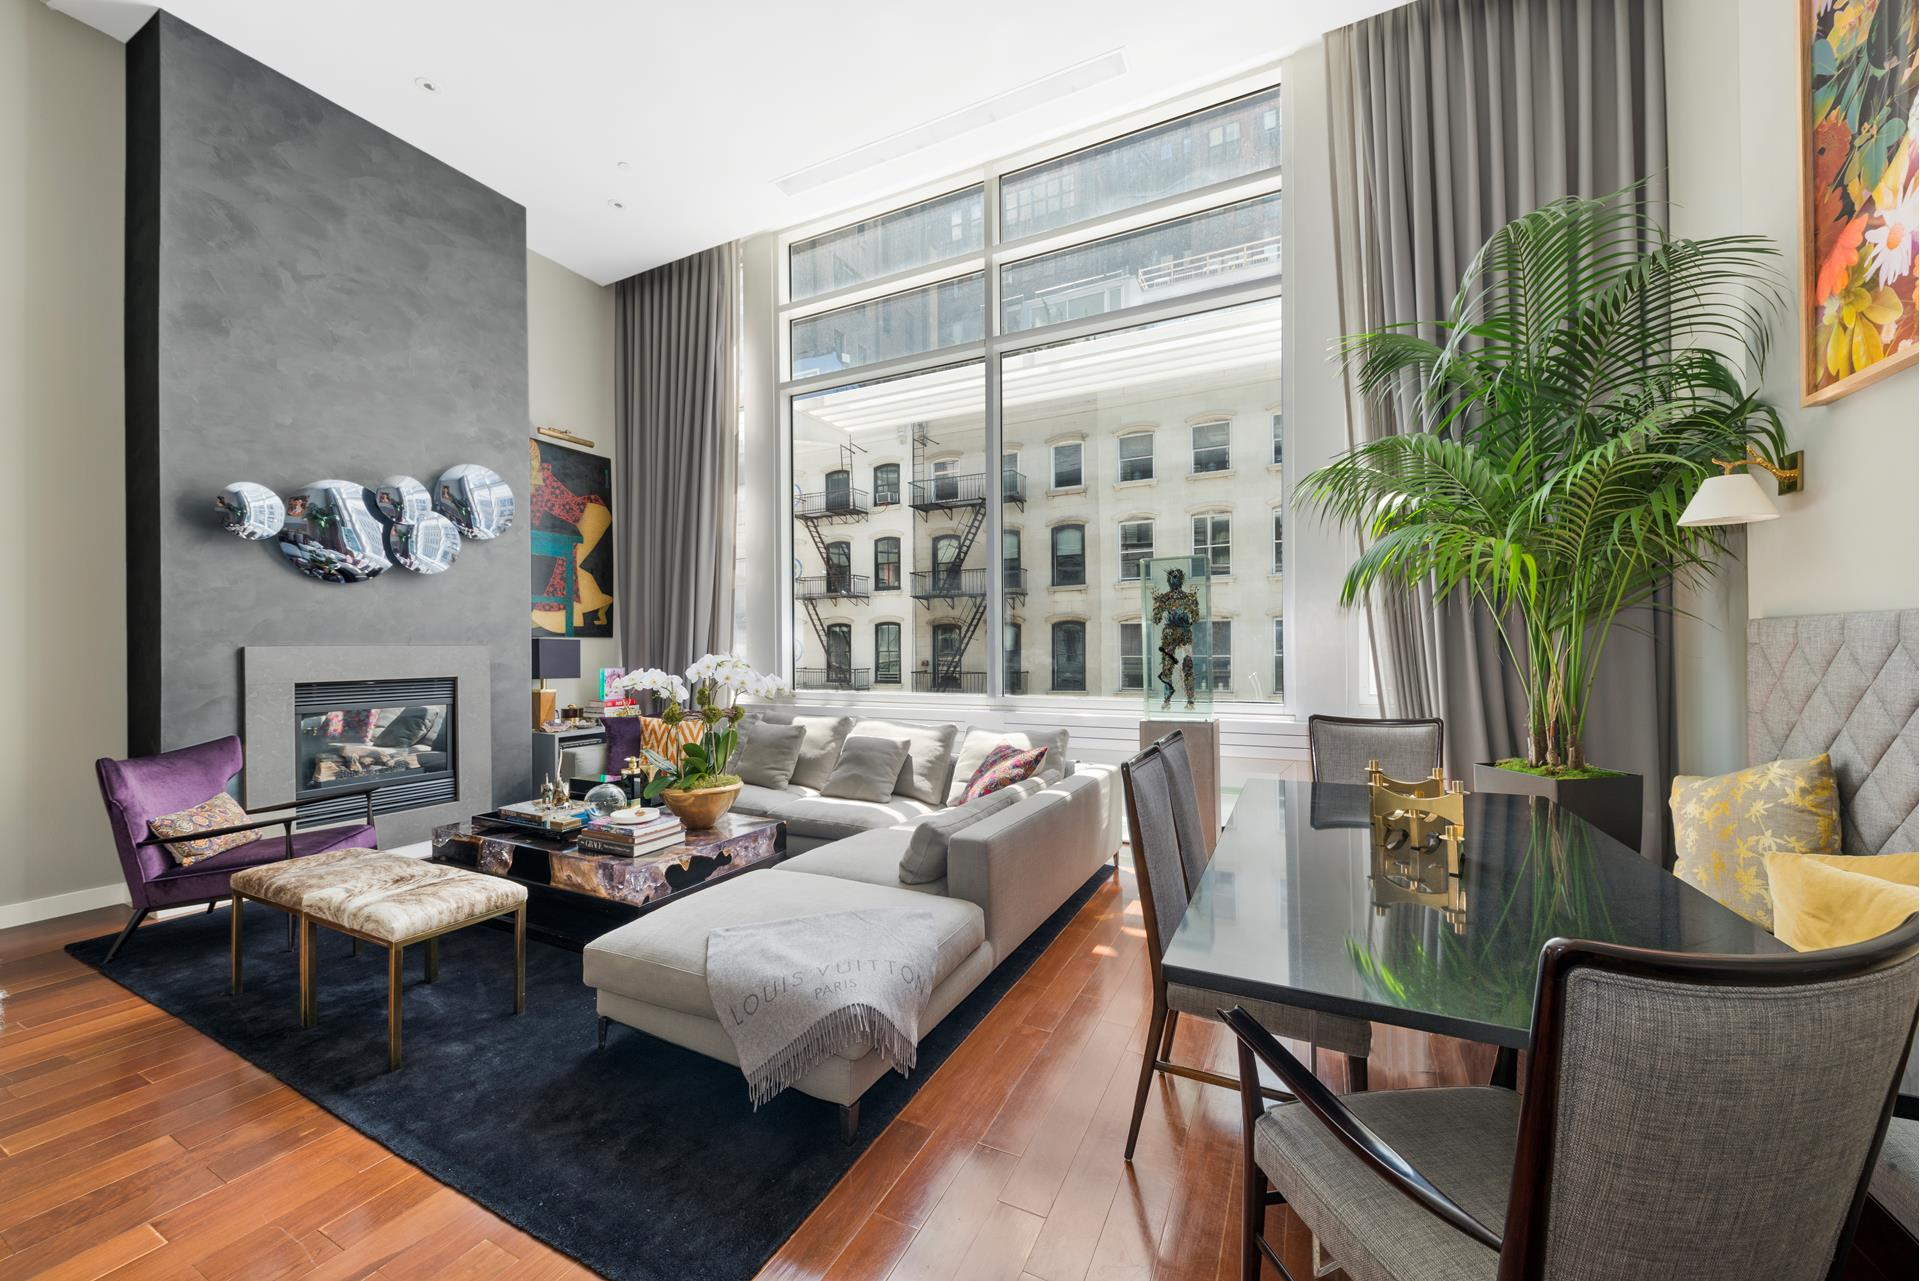 Tribeca Townhomes, 16 Warren St, 4 - TriBeCa, New York